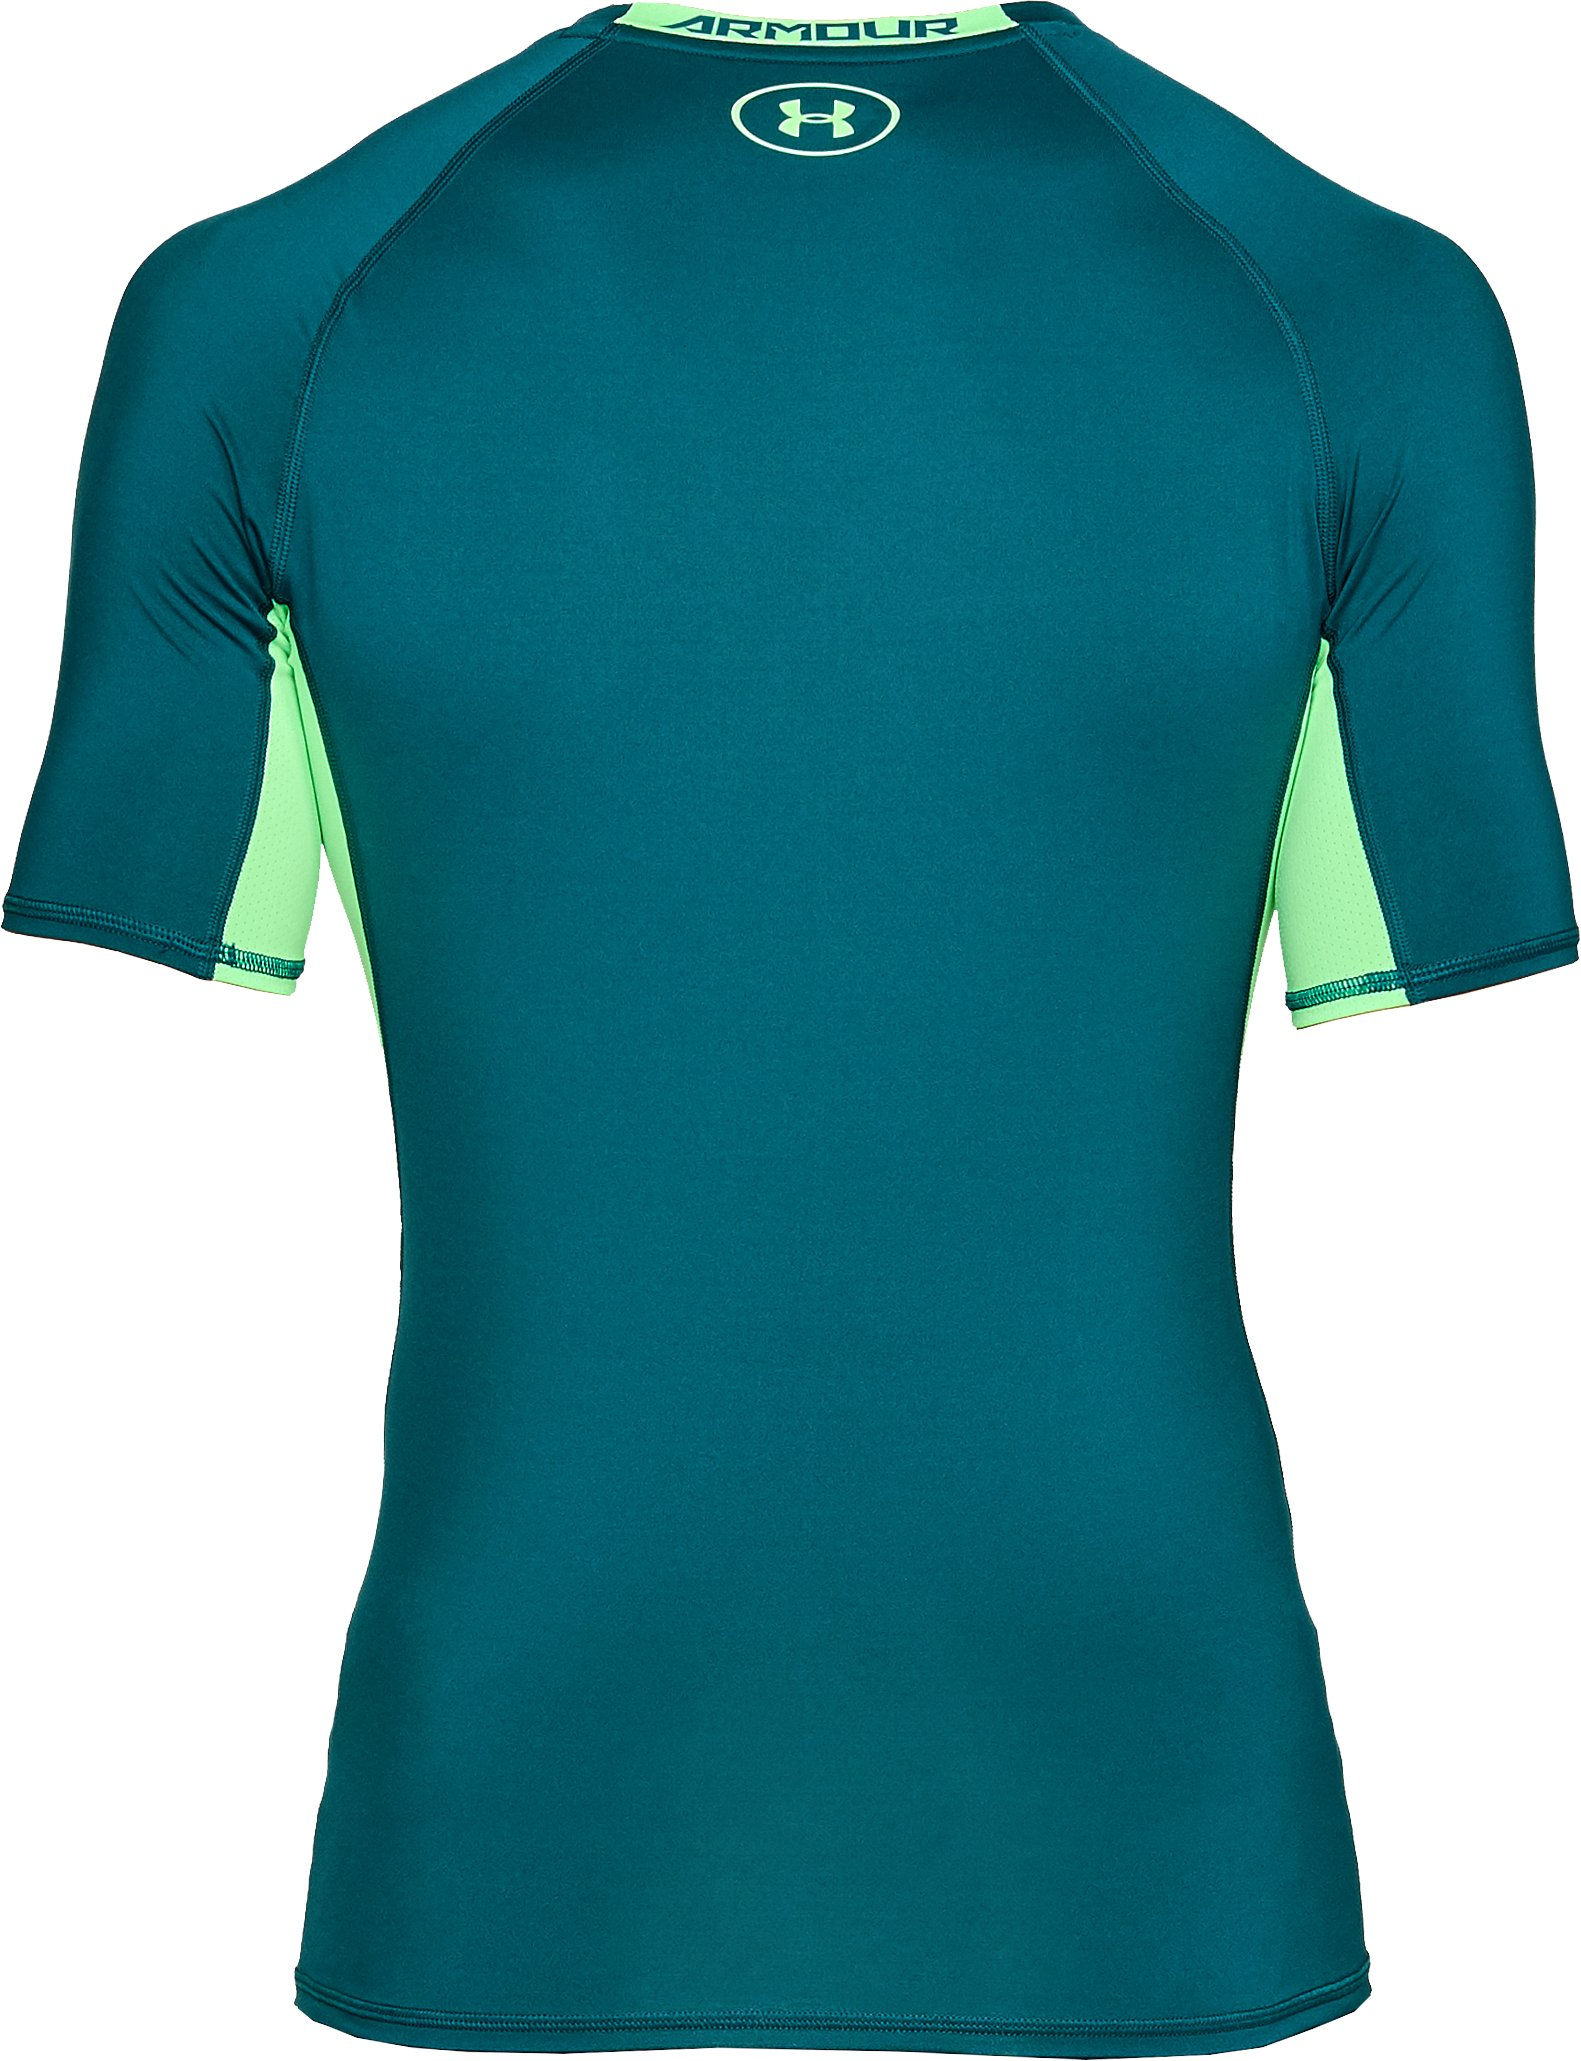 Men's UA HeatGear® Armour Short Sleeve Compression Shirt, TOURMALINE TEAL, undefined